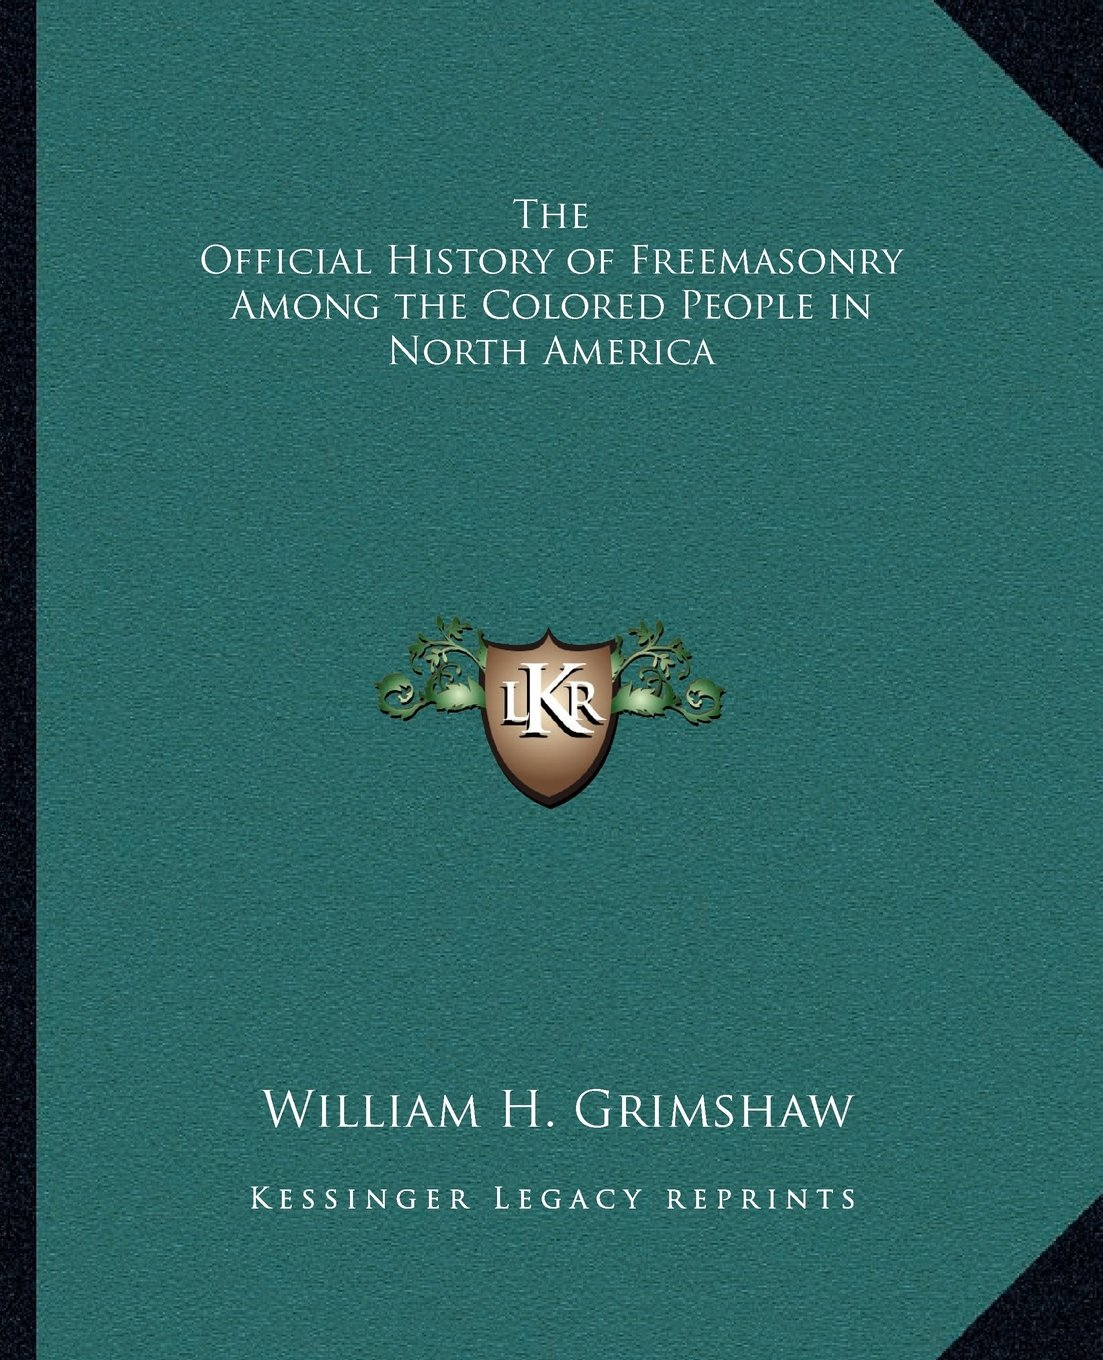 The Official History of Freemasonry Among the Colored People in North America ebook